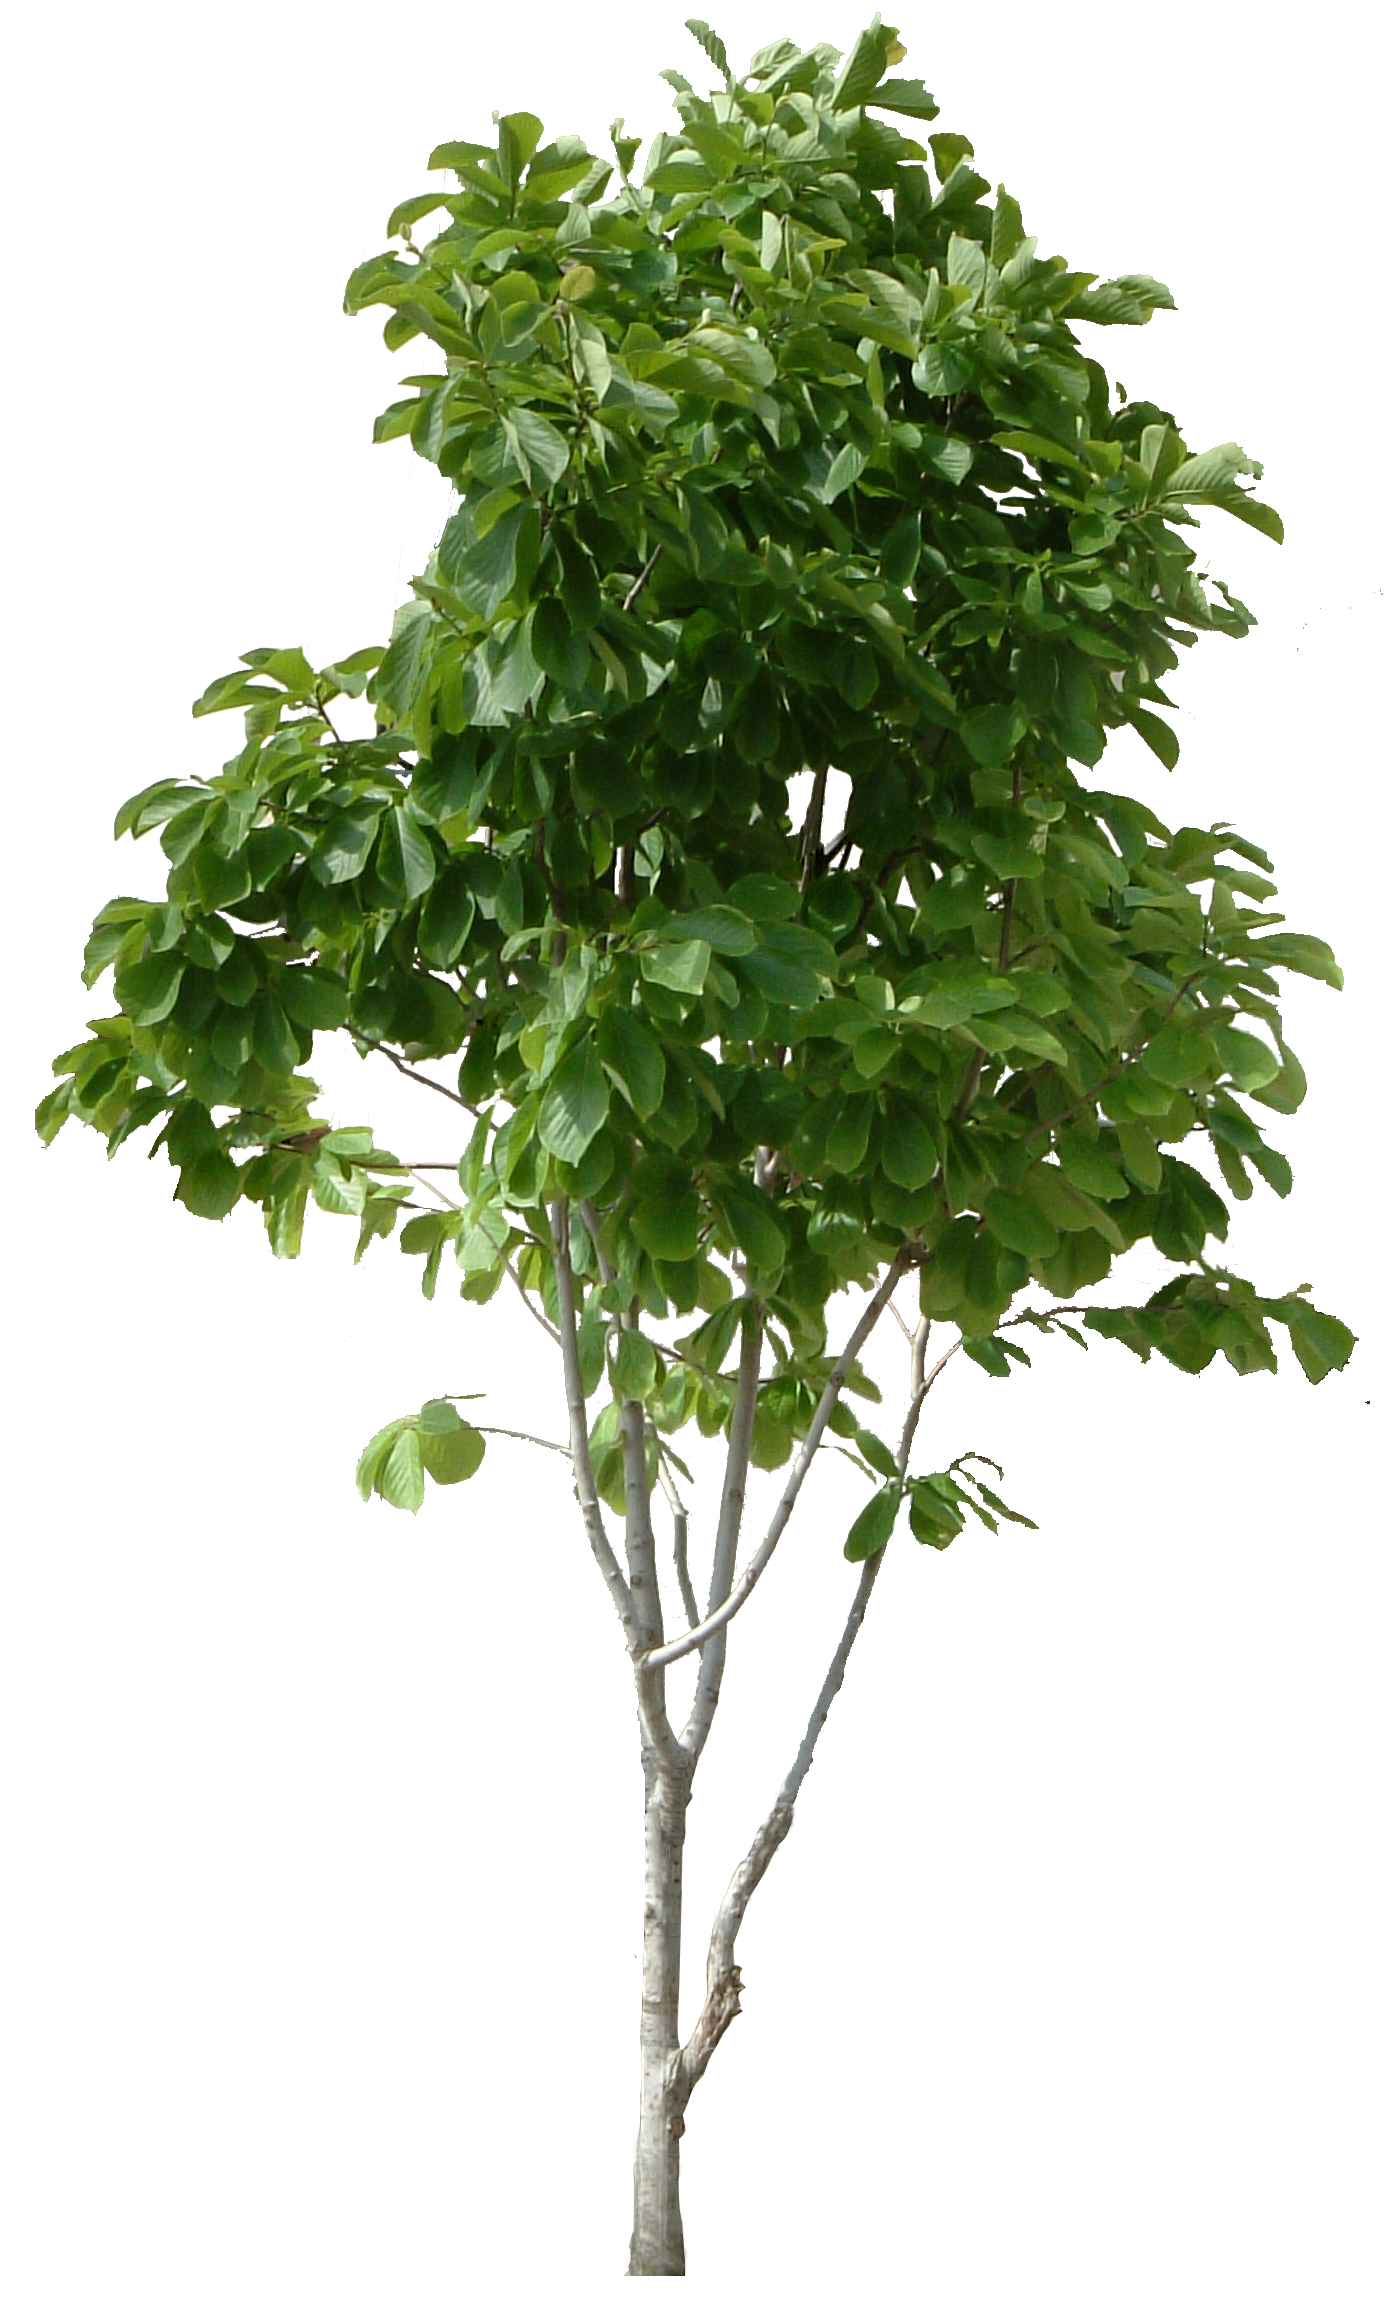 Tree Download png image: tree png